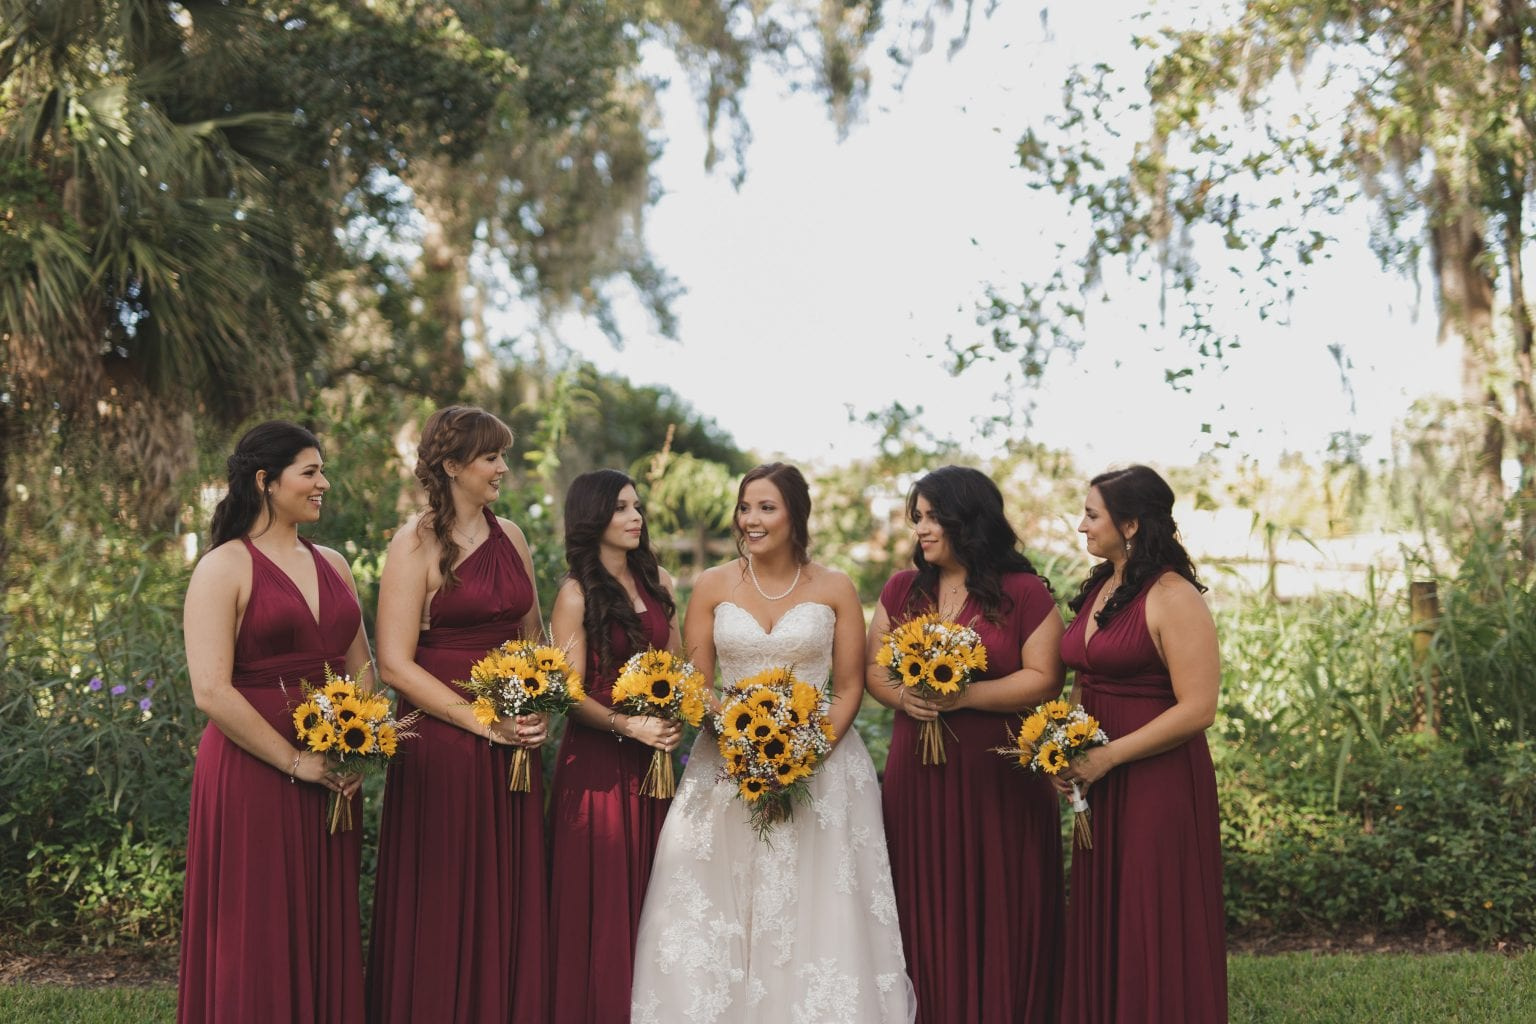 Burgundy dress for an Autumn wedding